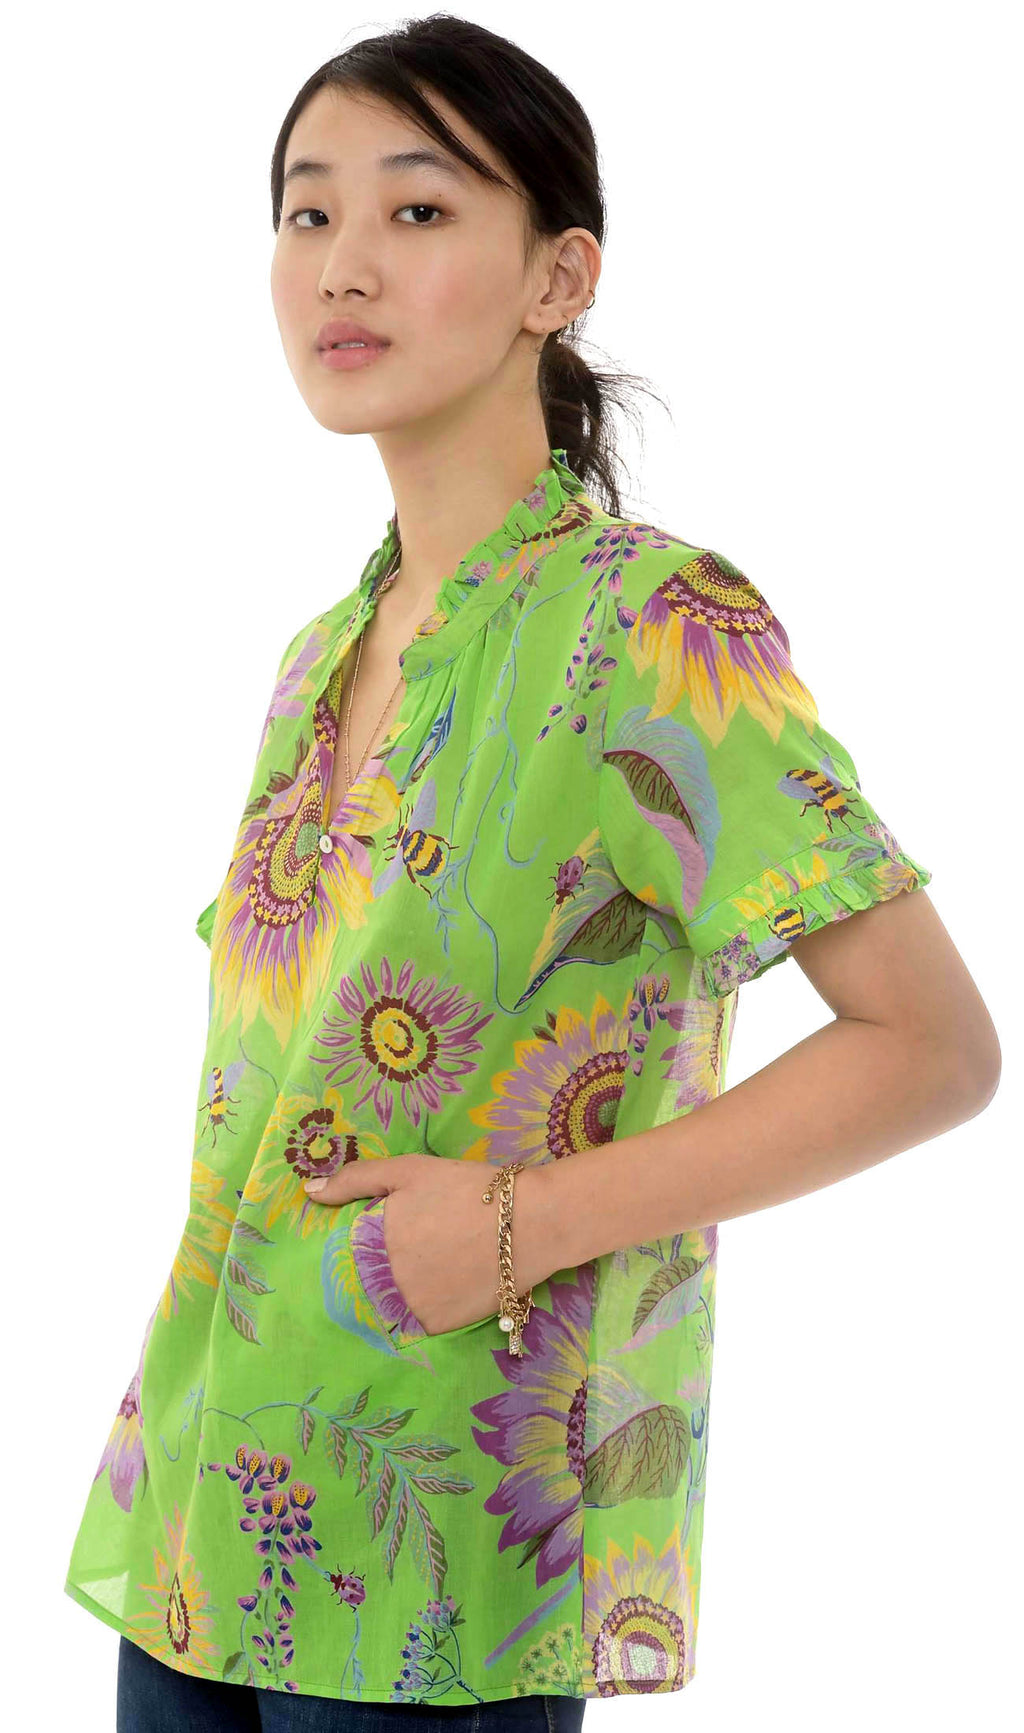 Ebisu Top, Mid-Summer Bumble Bud Green, 100% Organic Cotton Voile